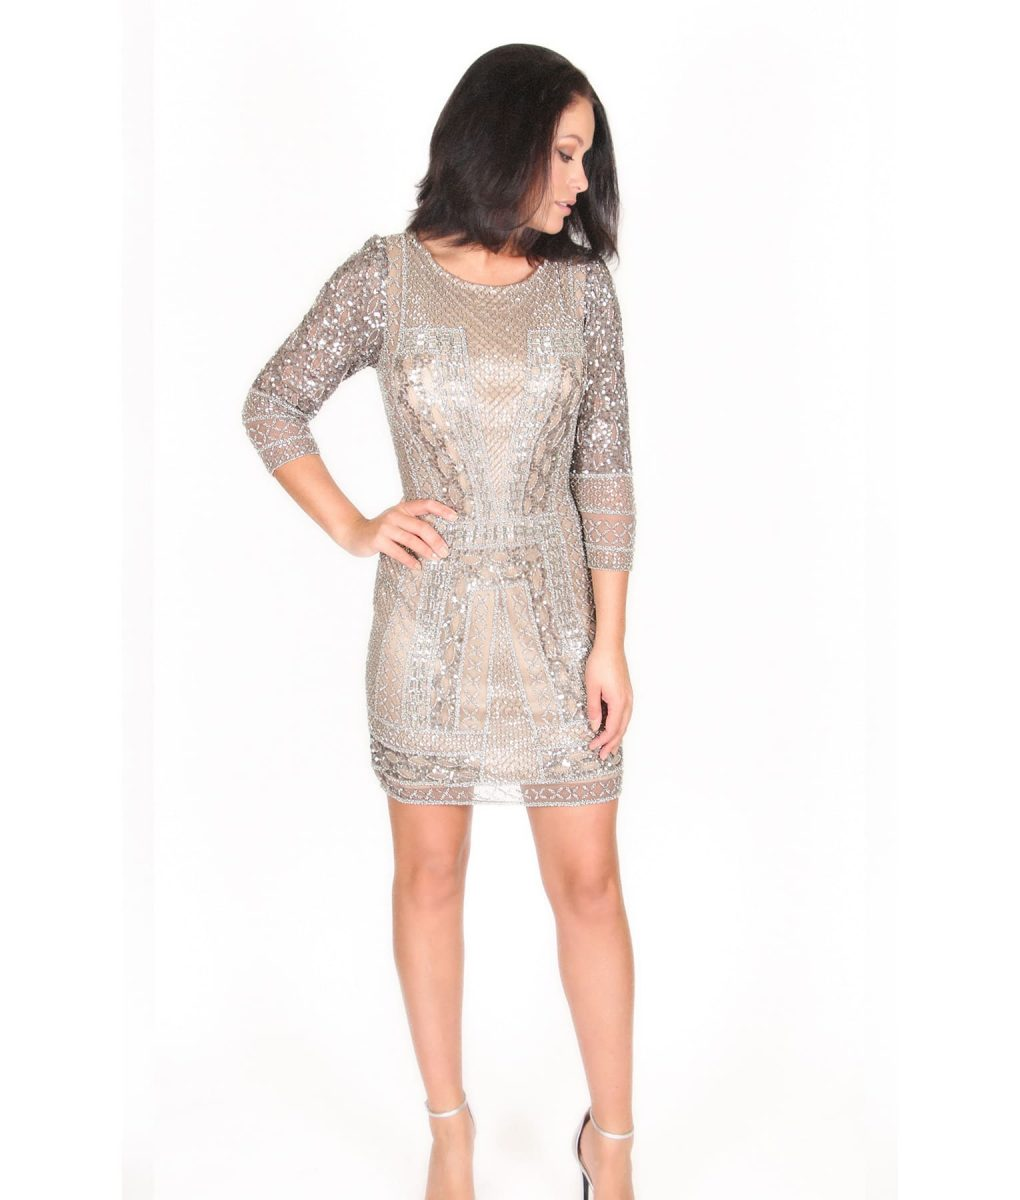 Alila Boutique Silver Sequin Dress by Scala